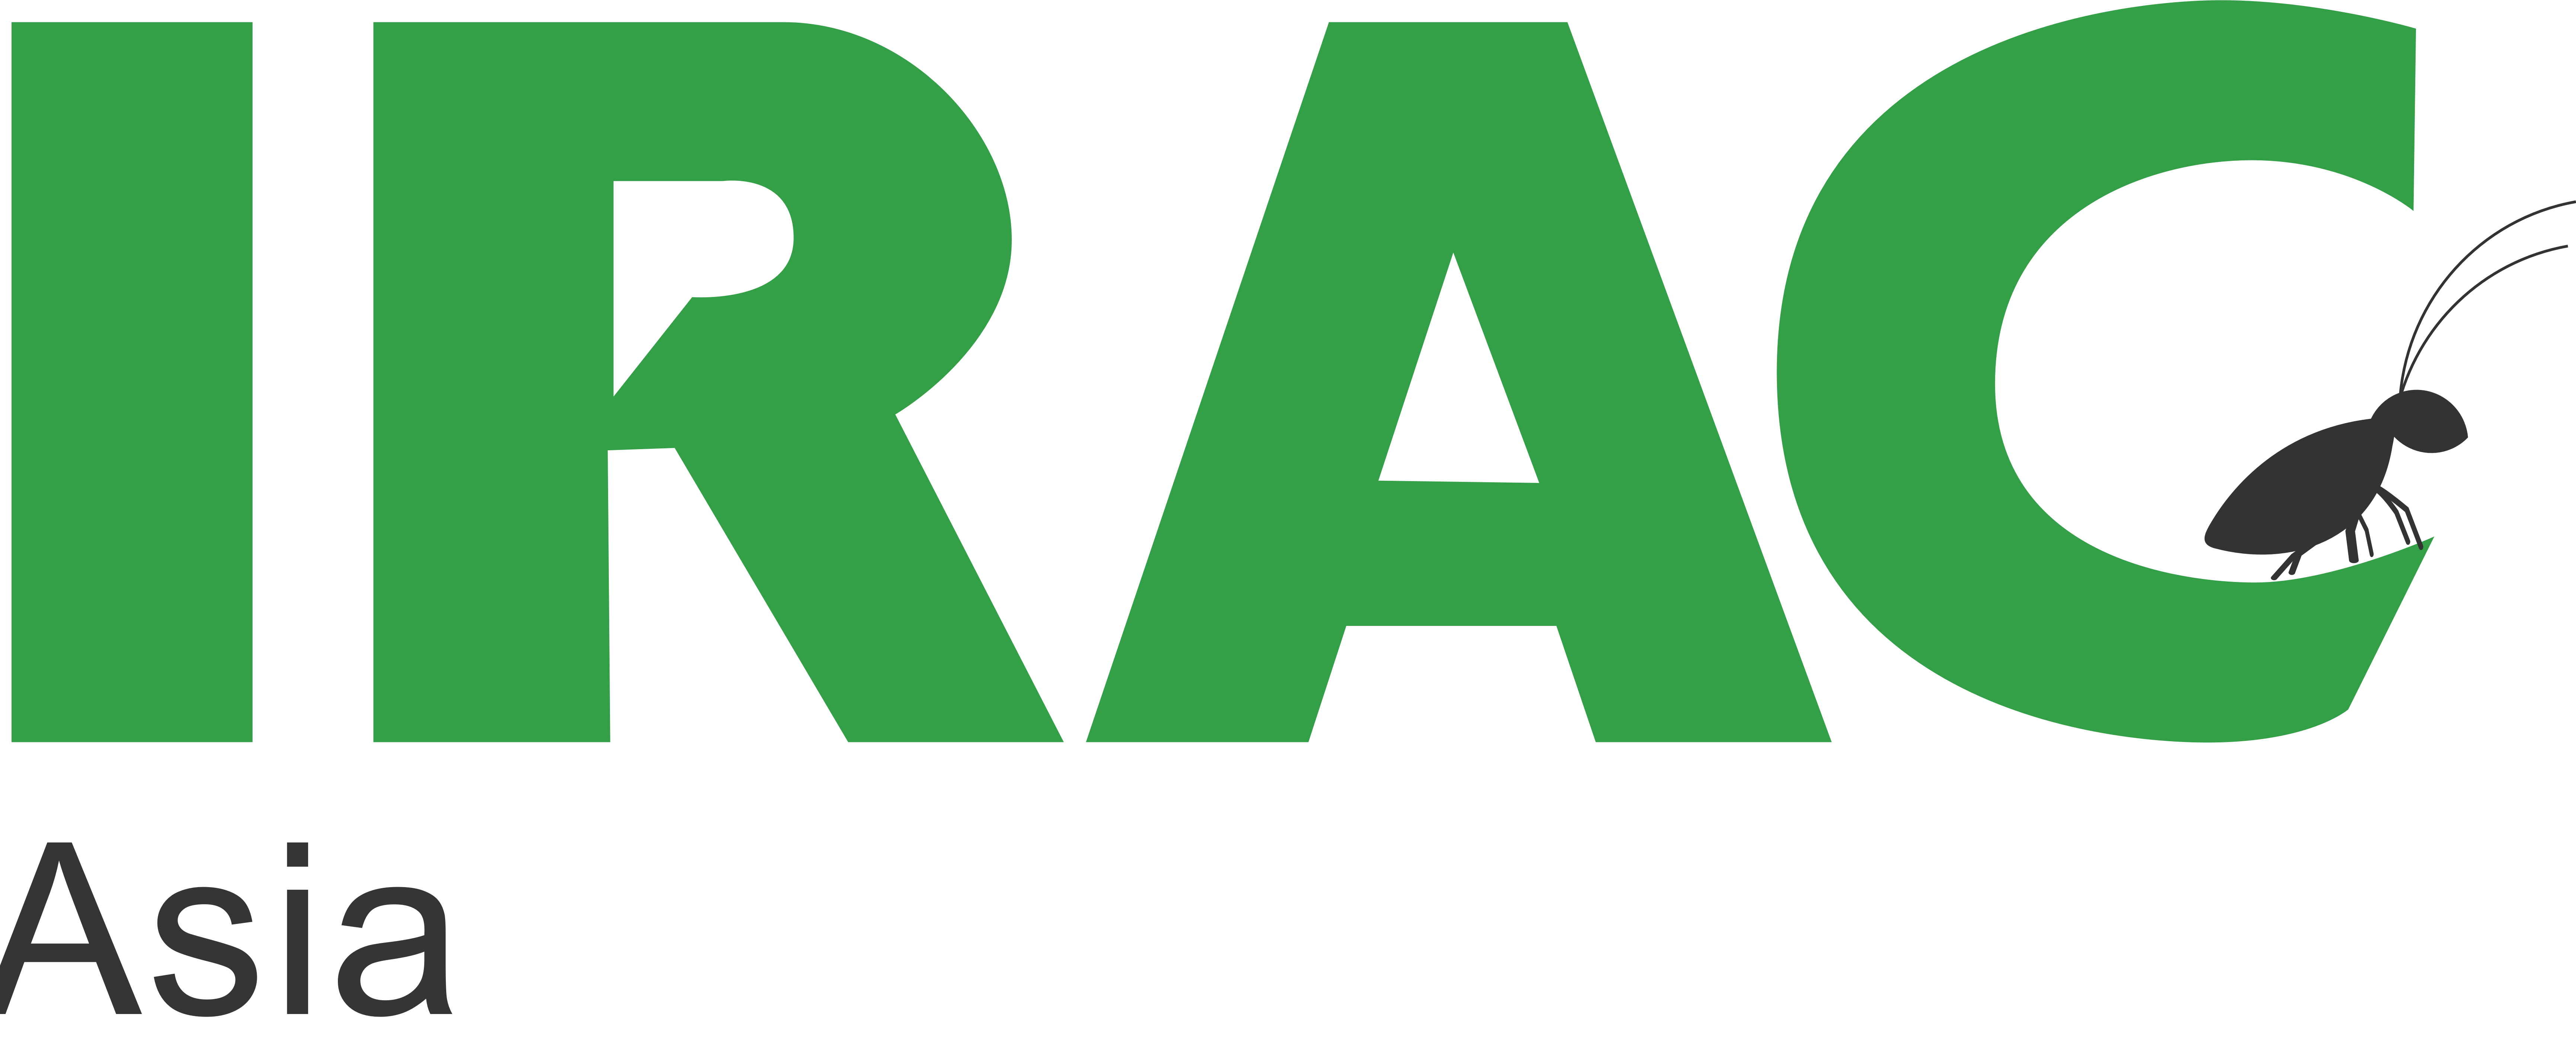 IRAC Asia Secondary